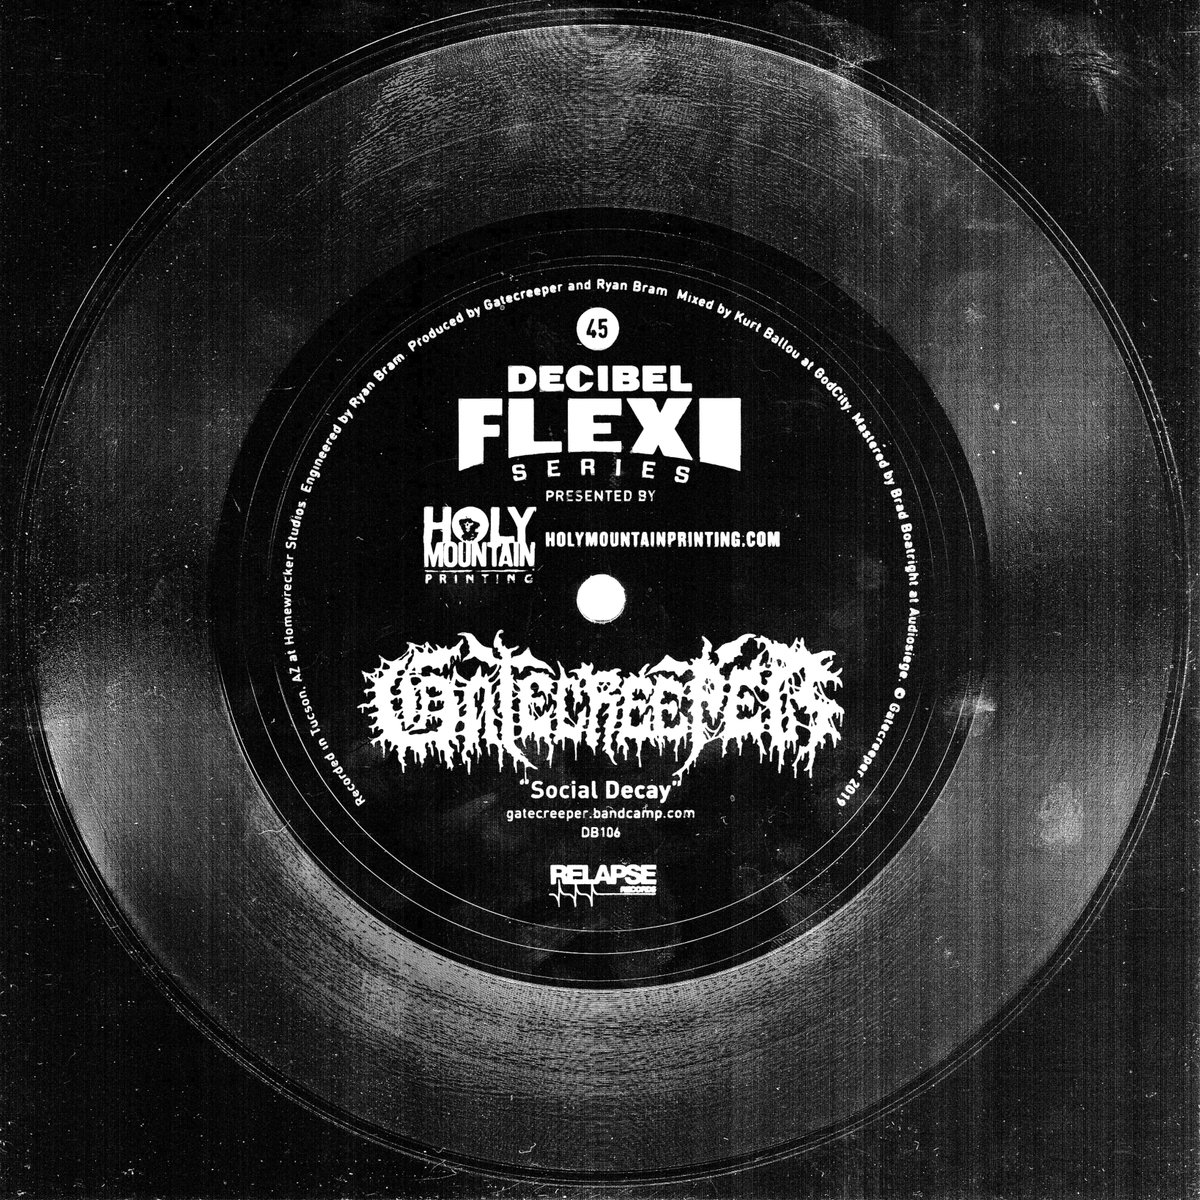 'Social Decay' from our @dbmagazine Flexi is up now on all streaming services. orcd.co/gc-socialdecay